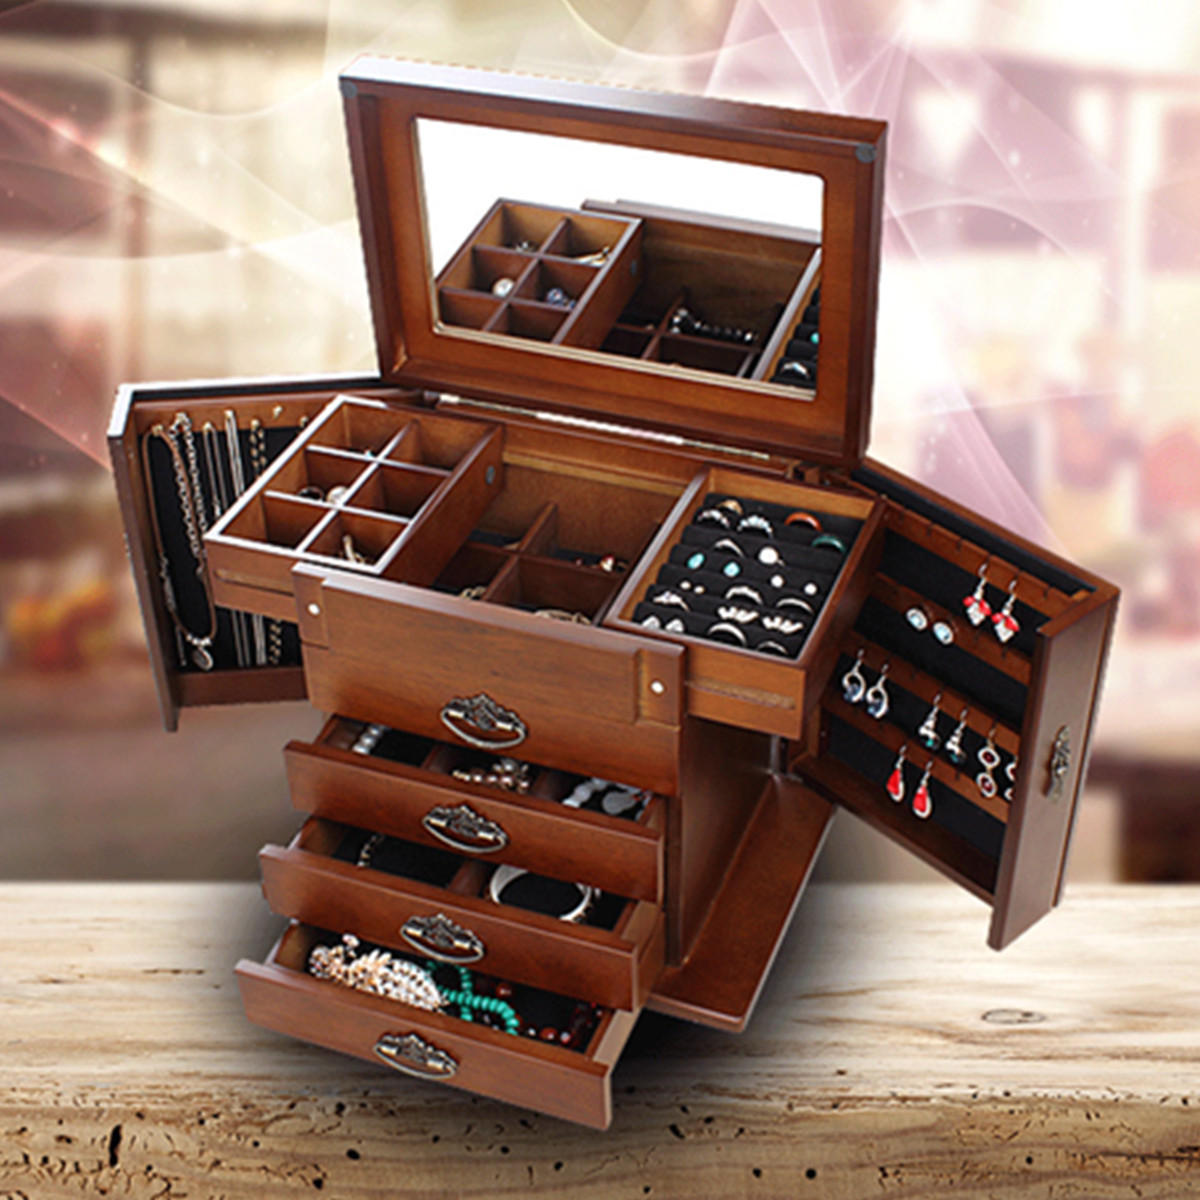 Wooden Jewelry Storage Box Cheaper Than Retail Price Buy Clothing Accessories And Lifestyle Products For Women Men